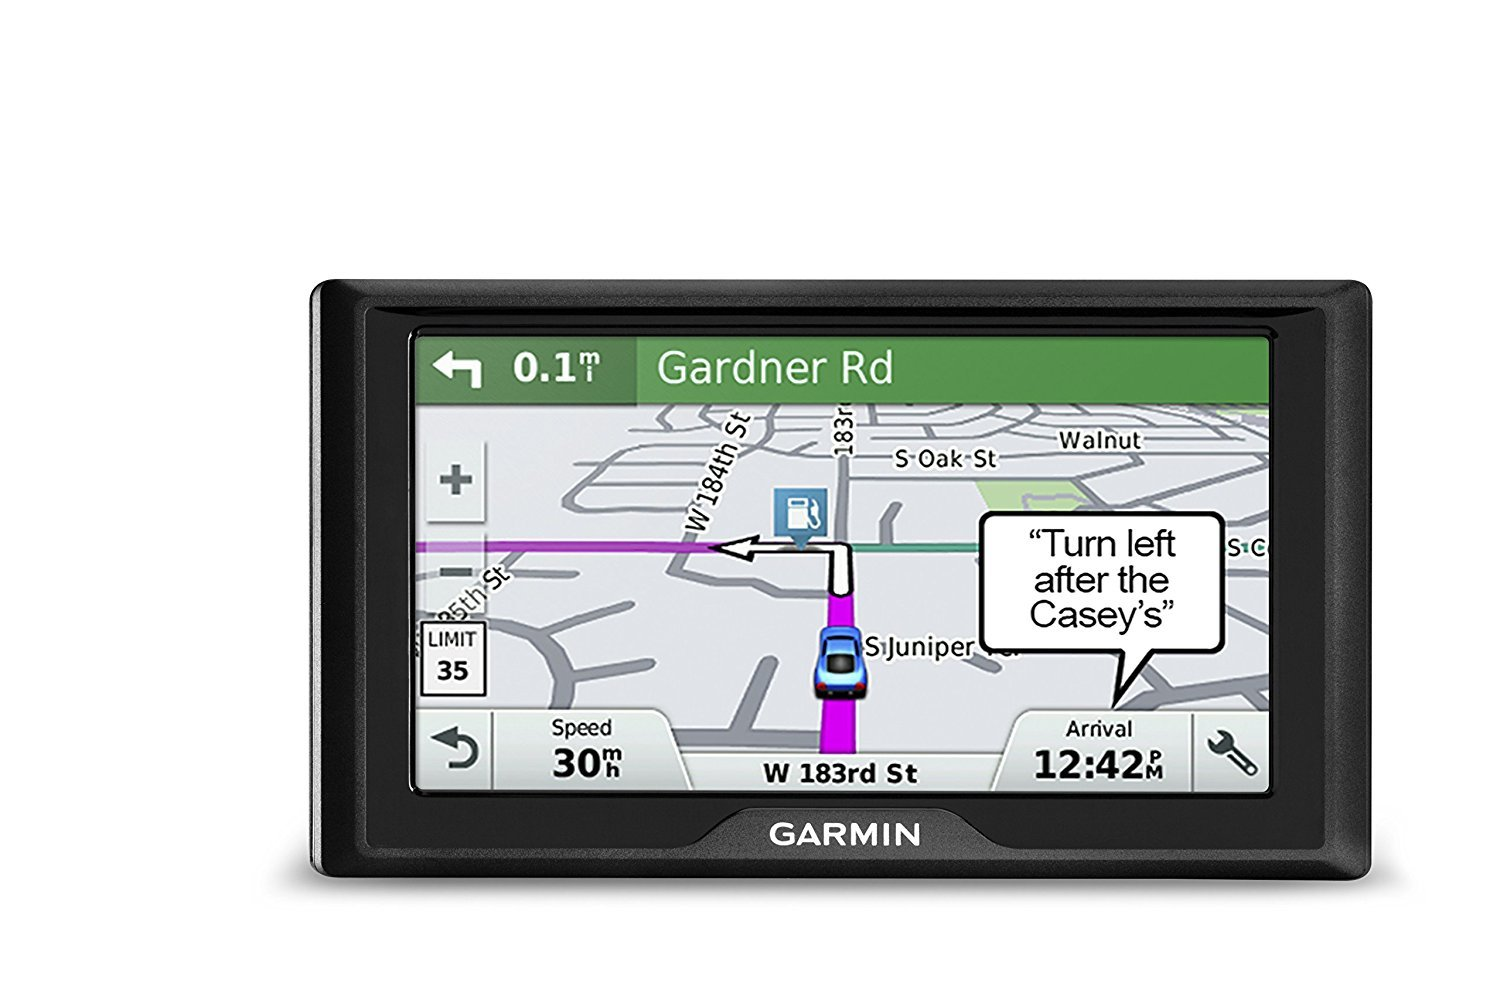 Garmin Drive 51 USA LMT-S GPS Navigator System with Lifetime Maps, Live Traffic and Live Parking, Driver Alerts, Direct Access, TripAdvisor and Foursquare data (Certified Refurbished)